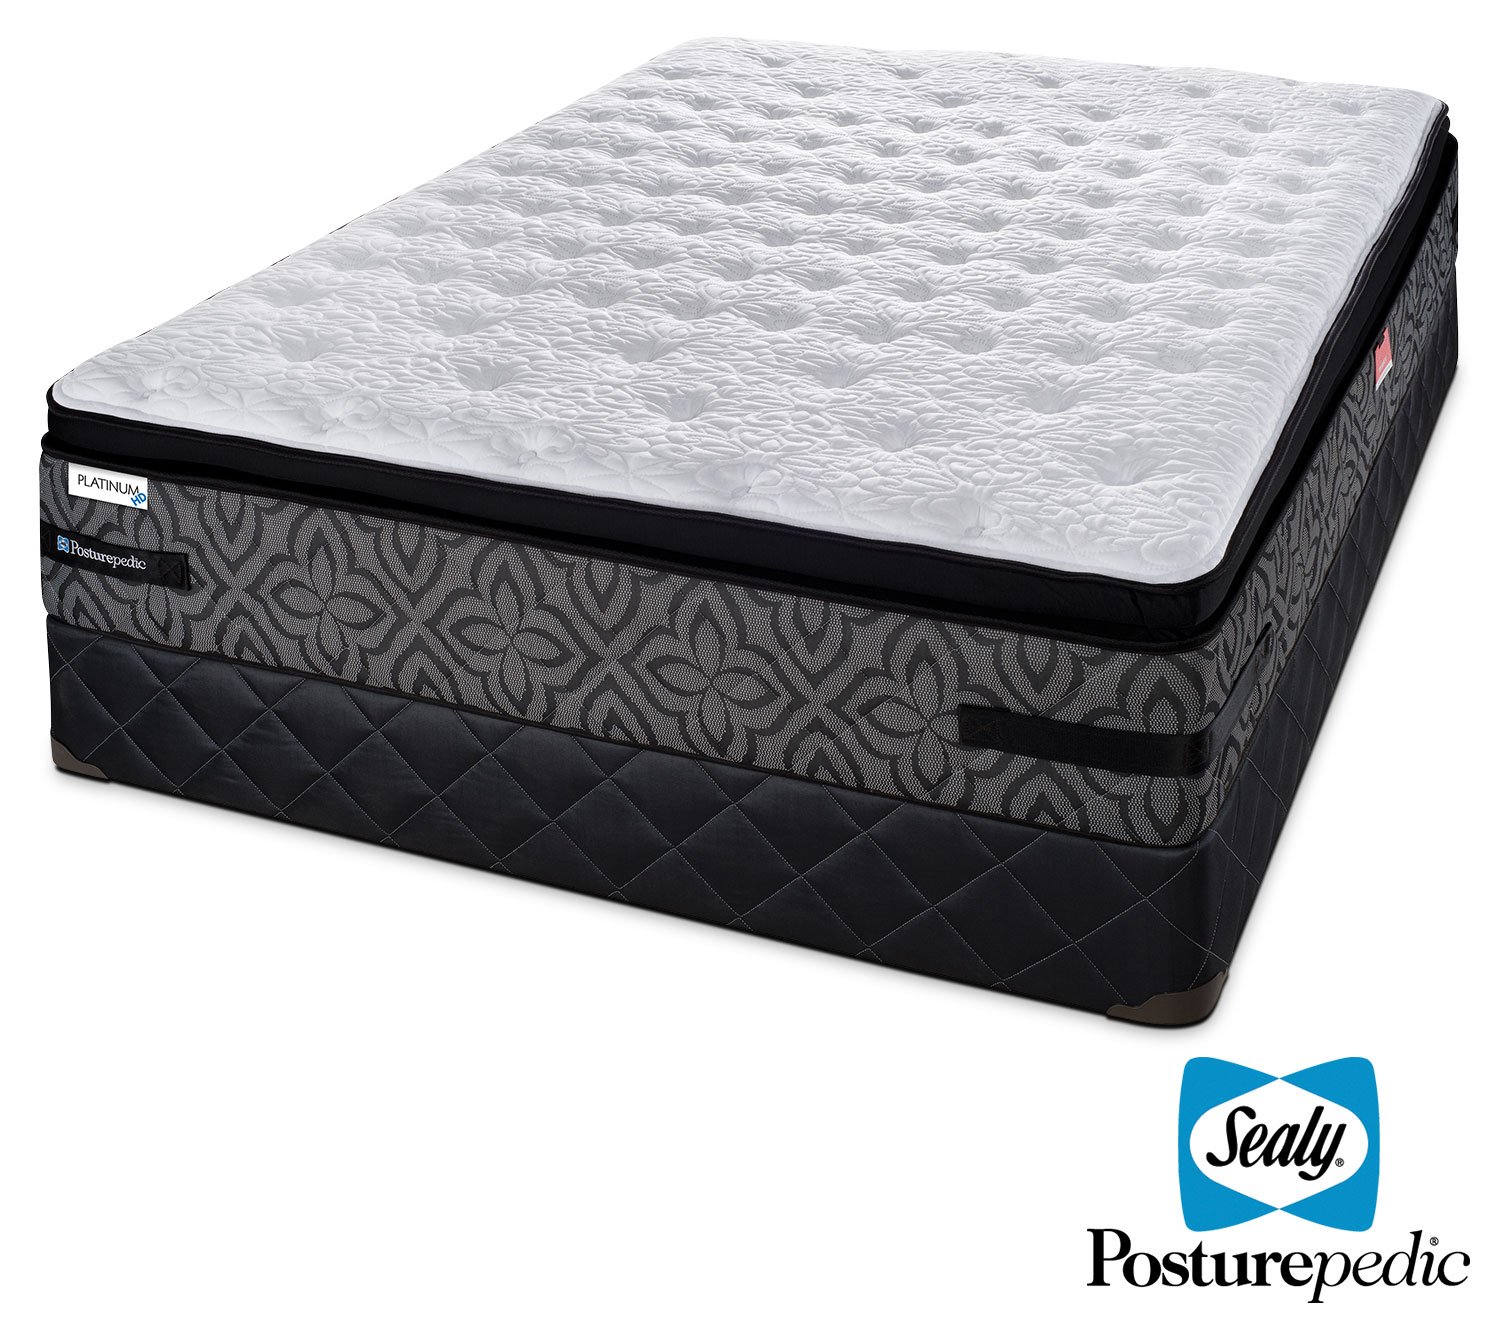 Sealy Posturepedic 2 K Firm Queen Mattress And Boxspring Set Leon 39 S